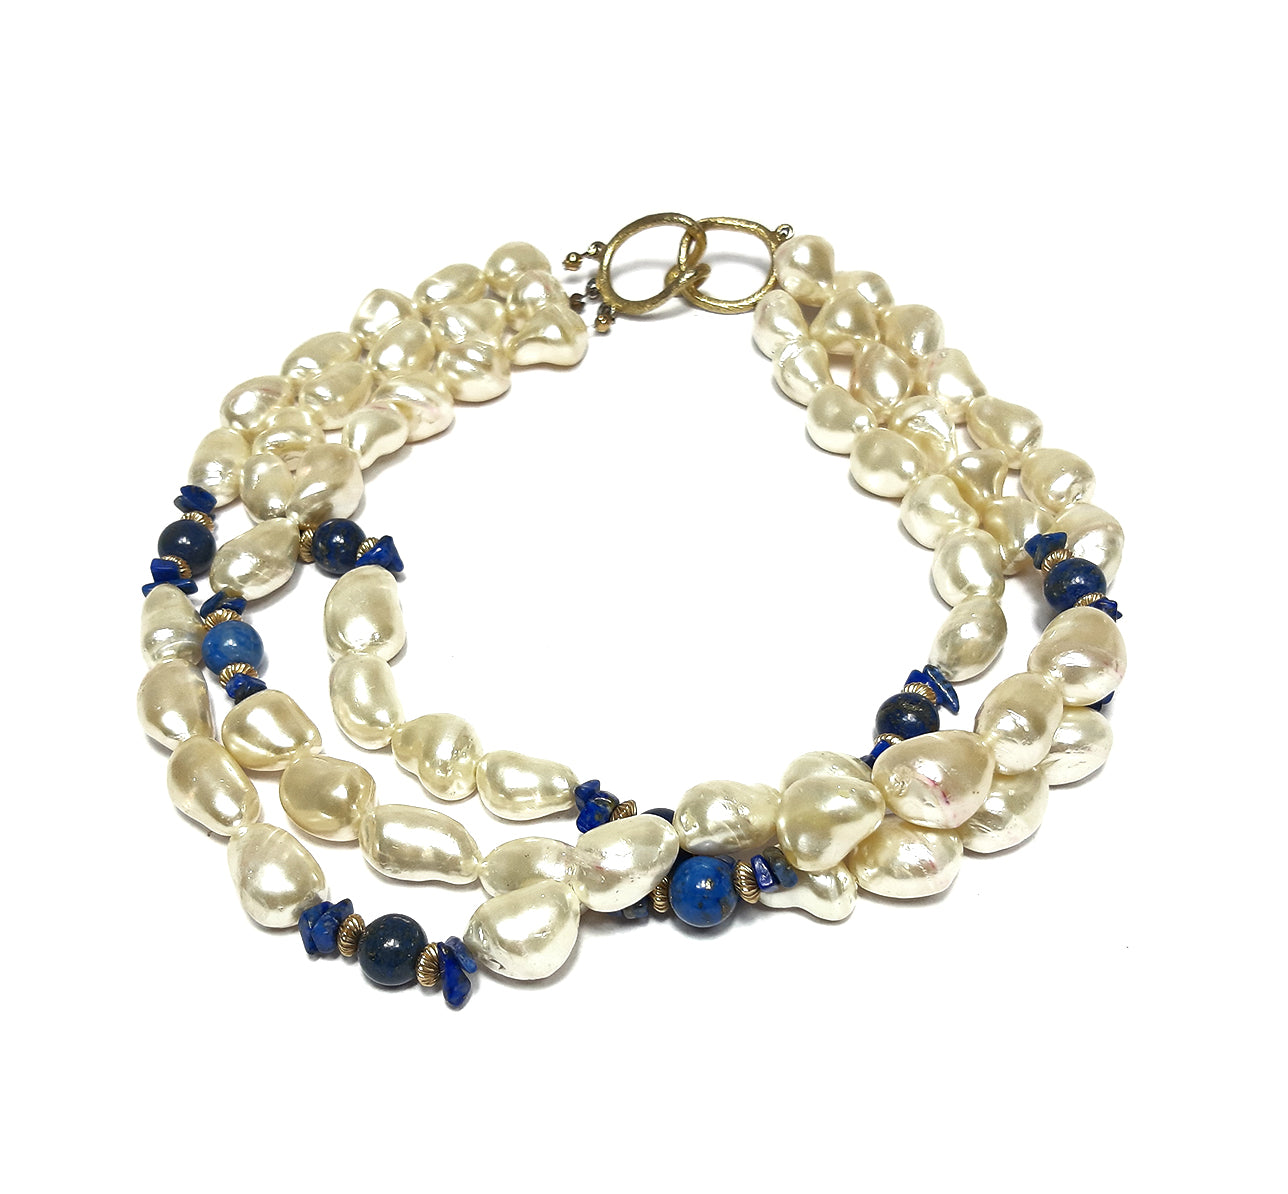 Genuine Freshwater Pearls and Lapis Lazuli Vintage Necklace